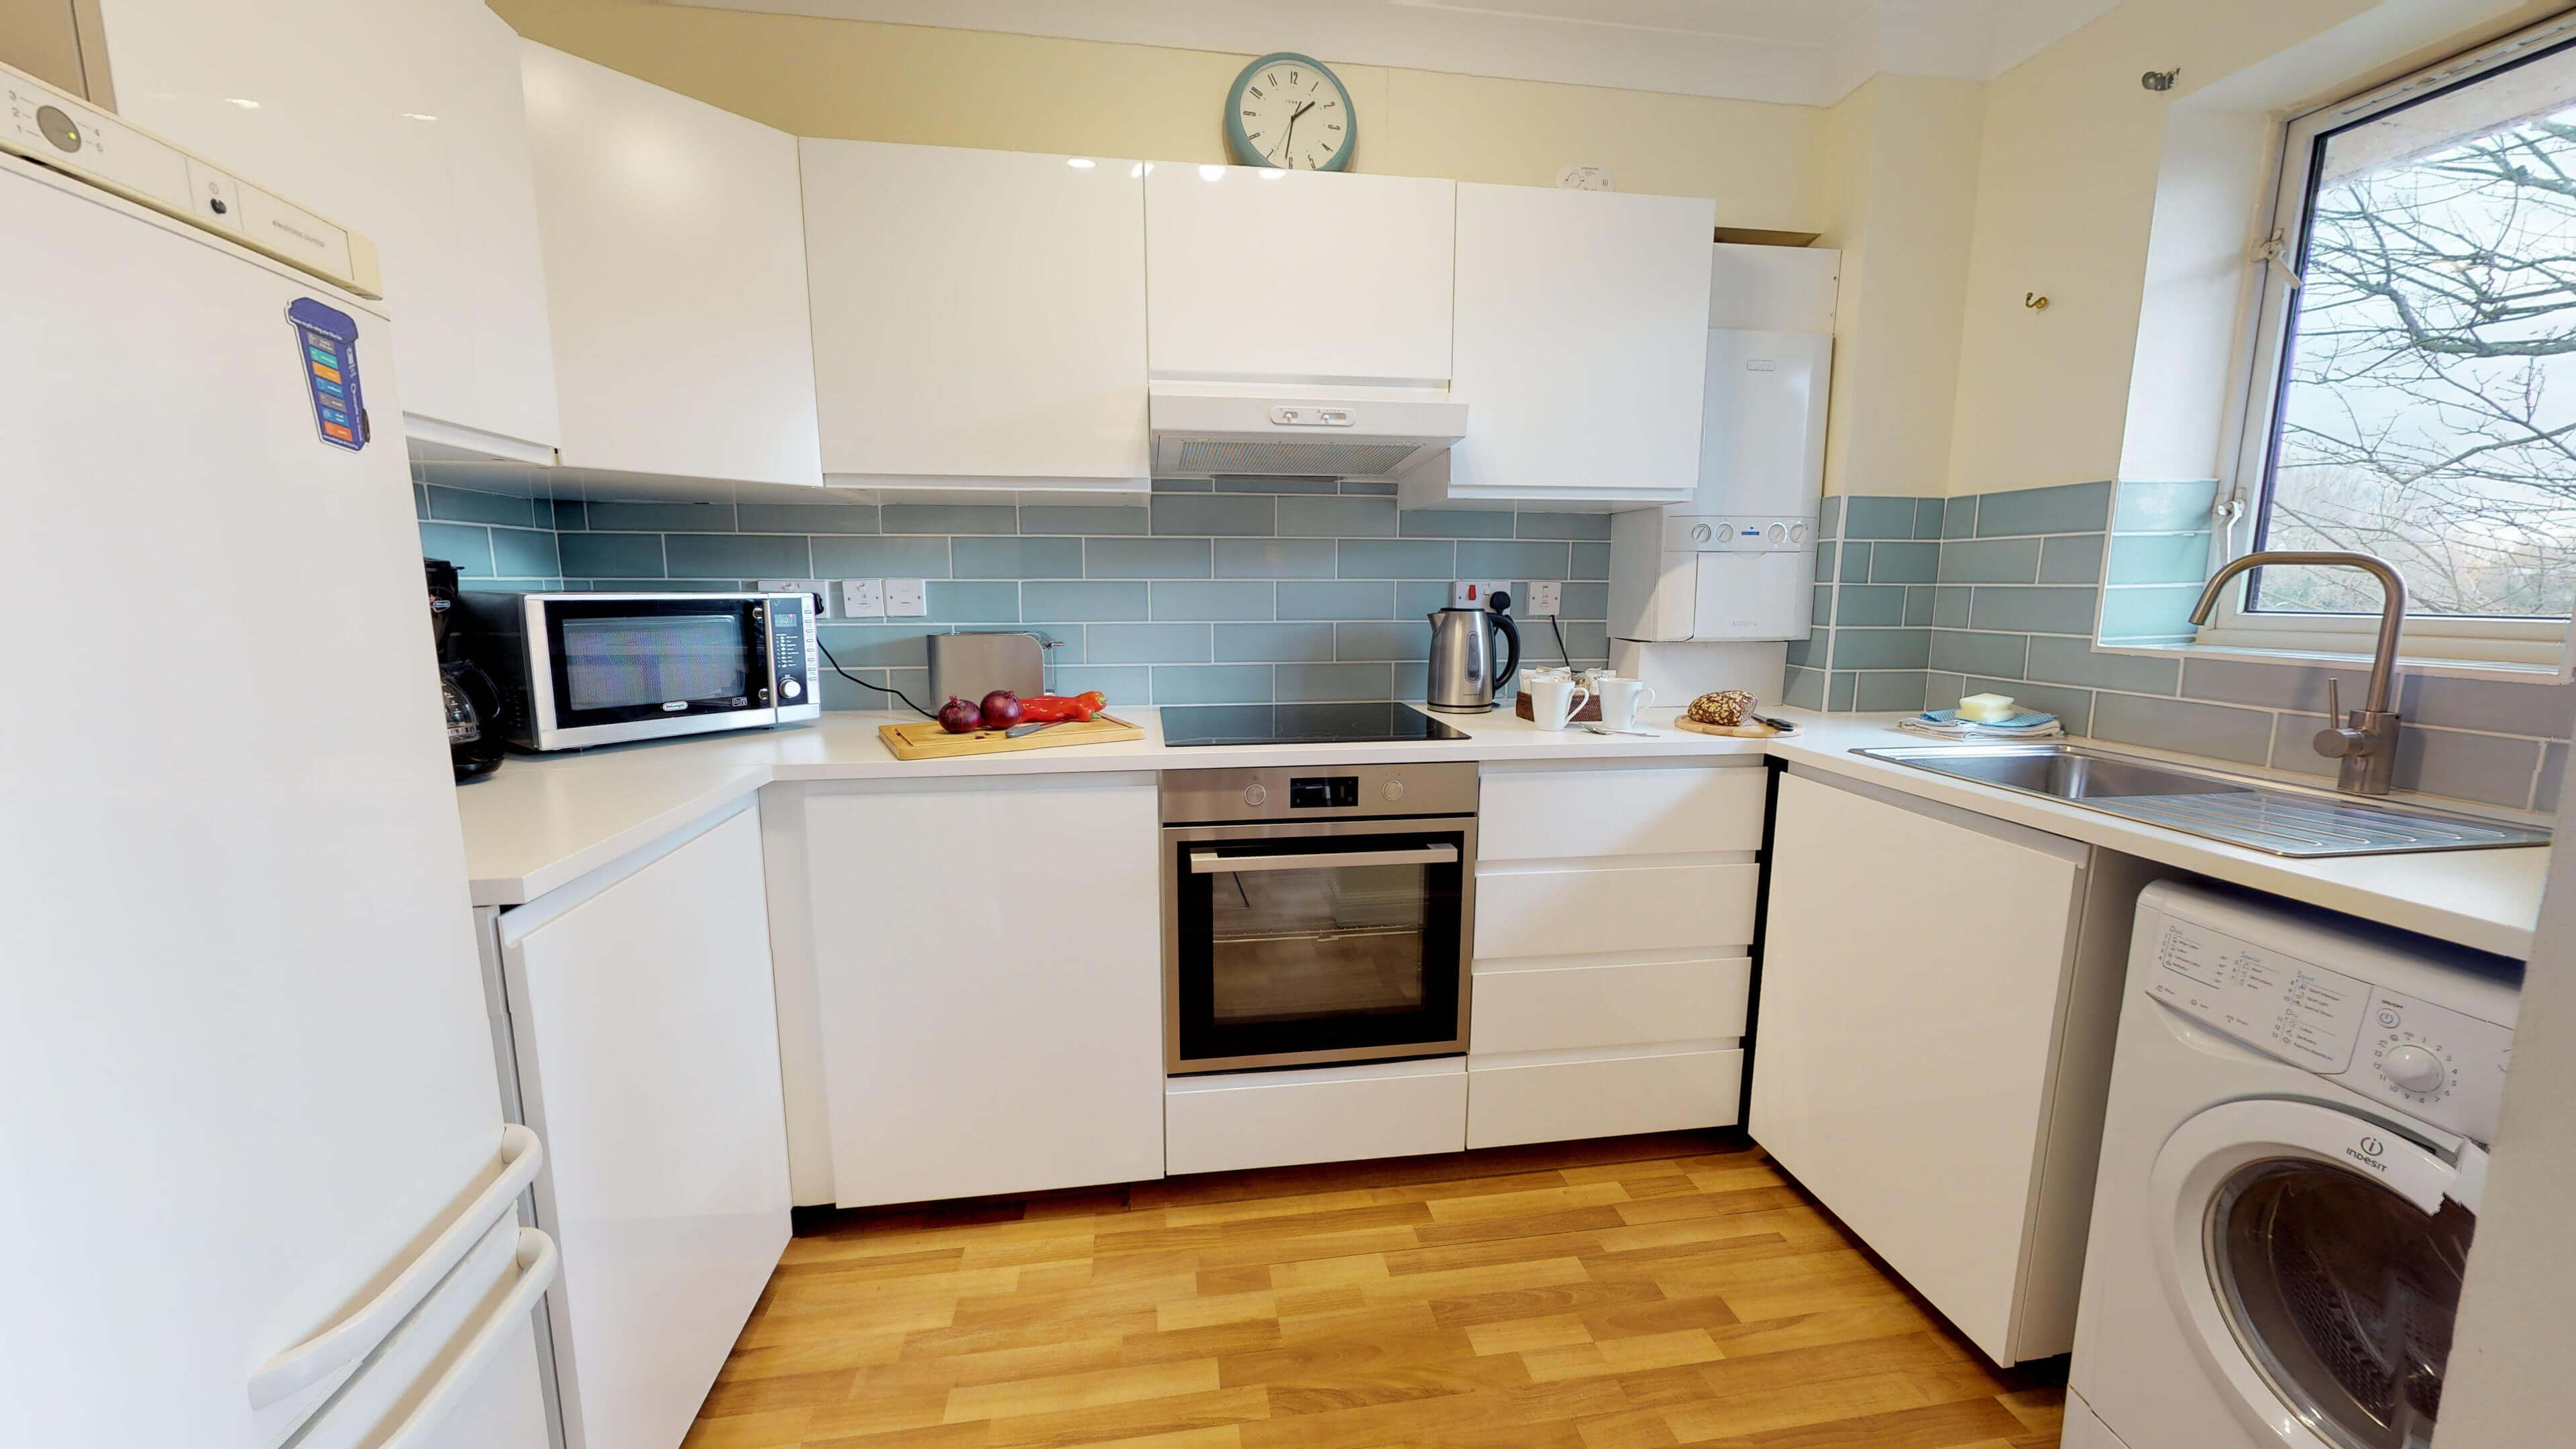 Millbank Oxford City Centre Short Stay Apartment Sleeps 4 Kitchewn Inside